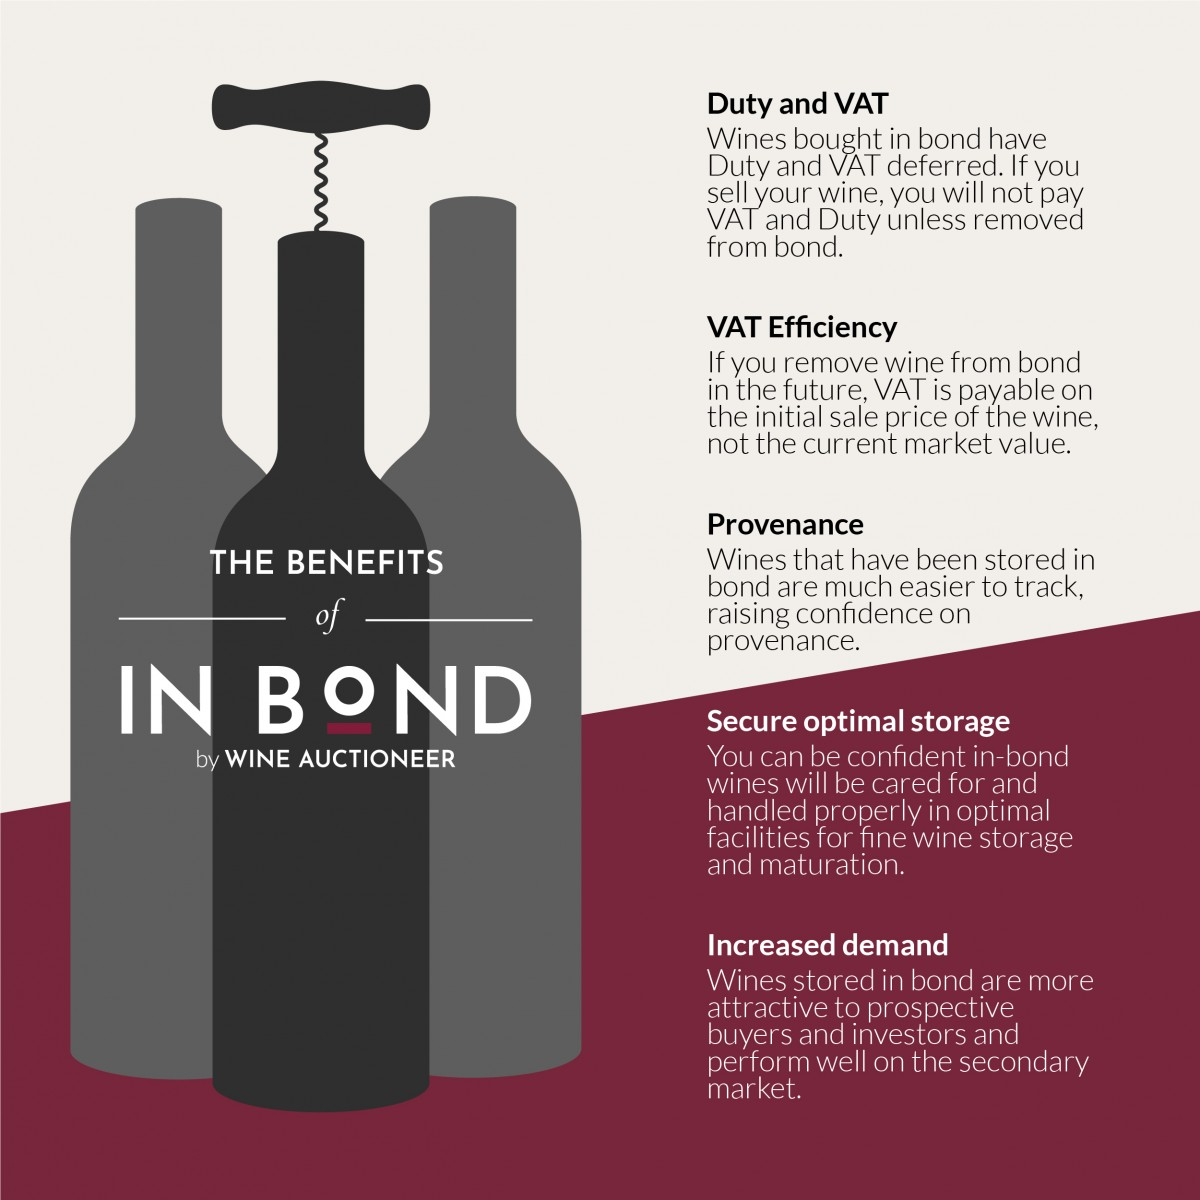 Benefits of buying and selling wine in bond